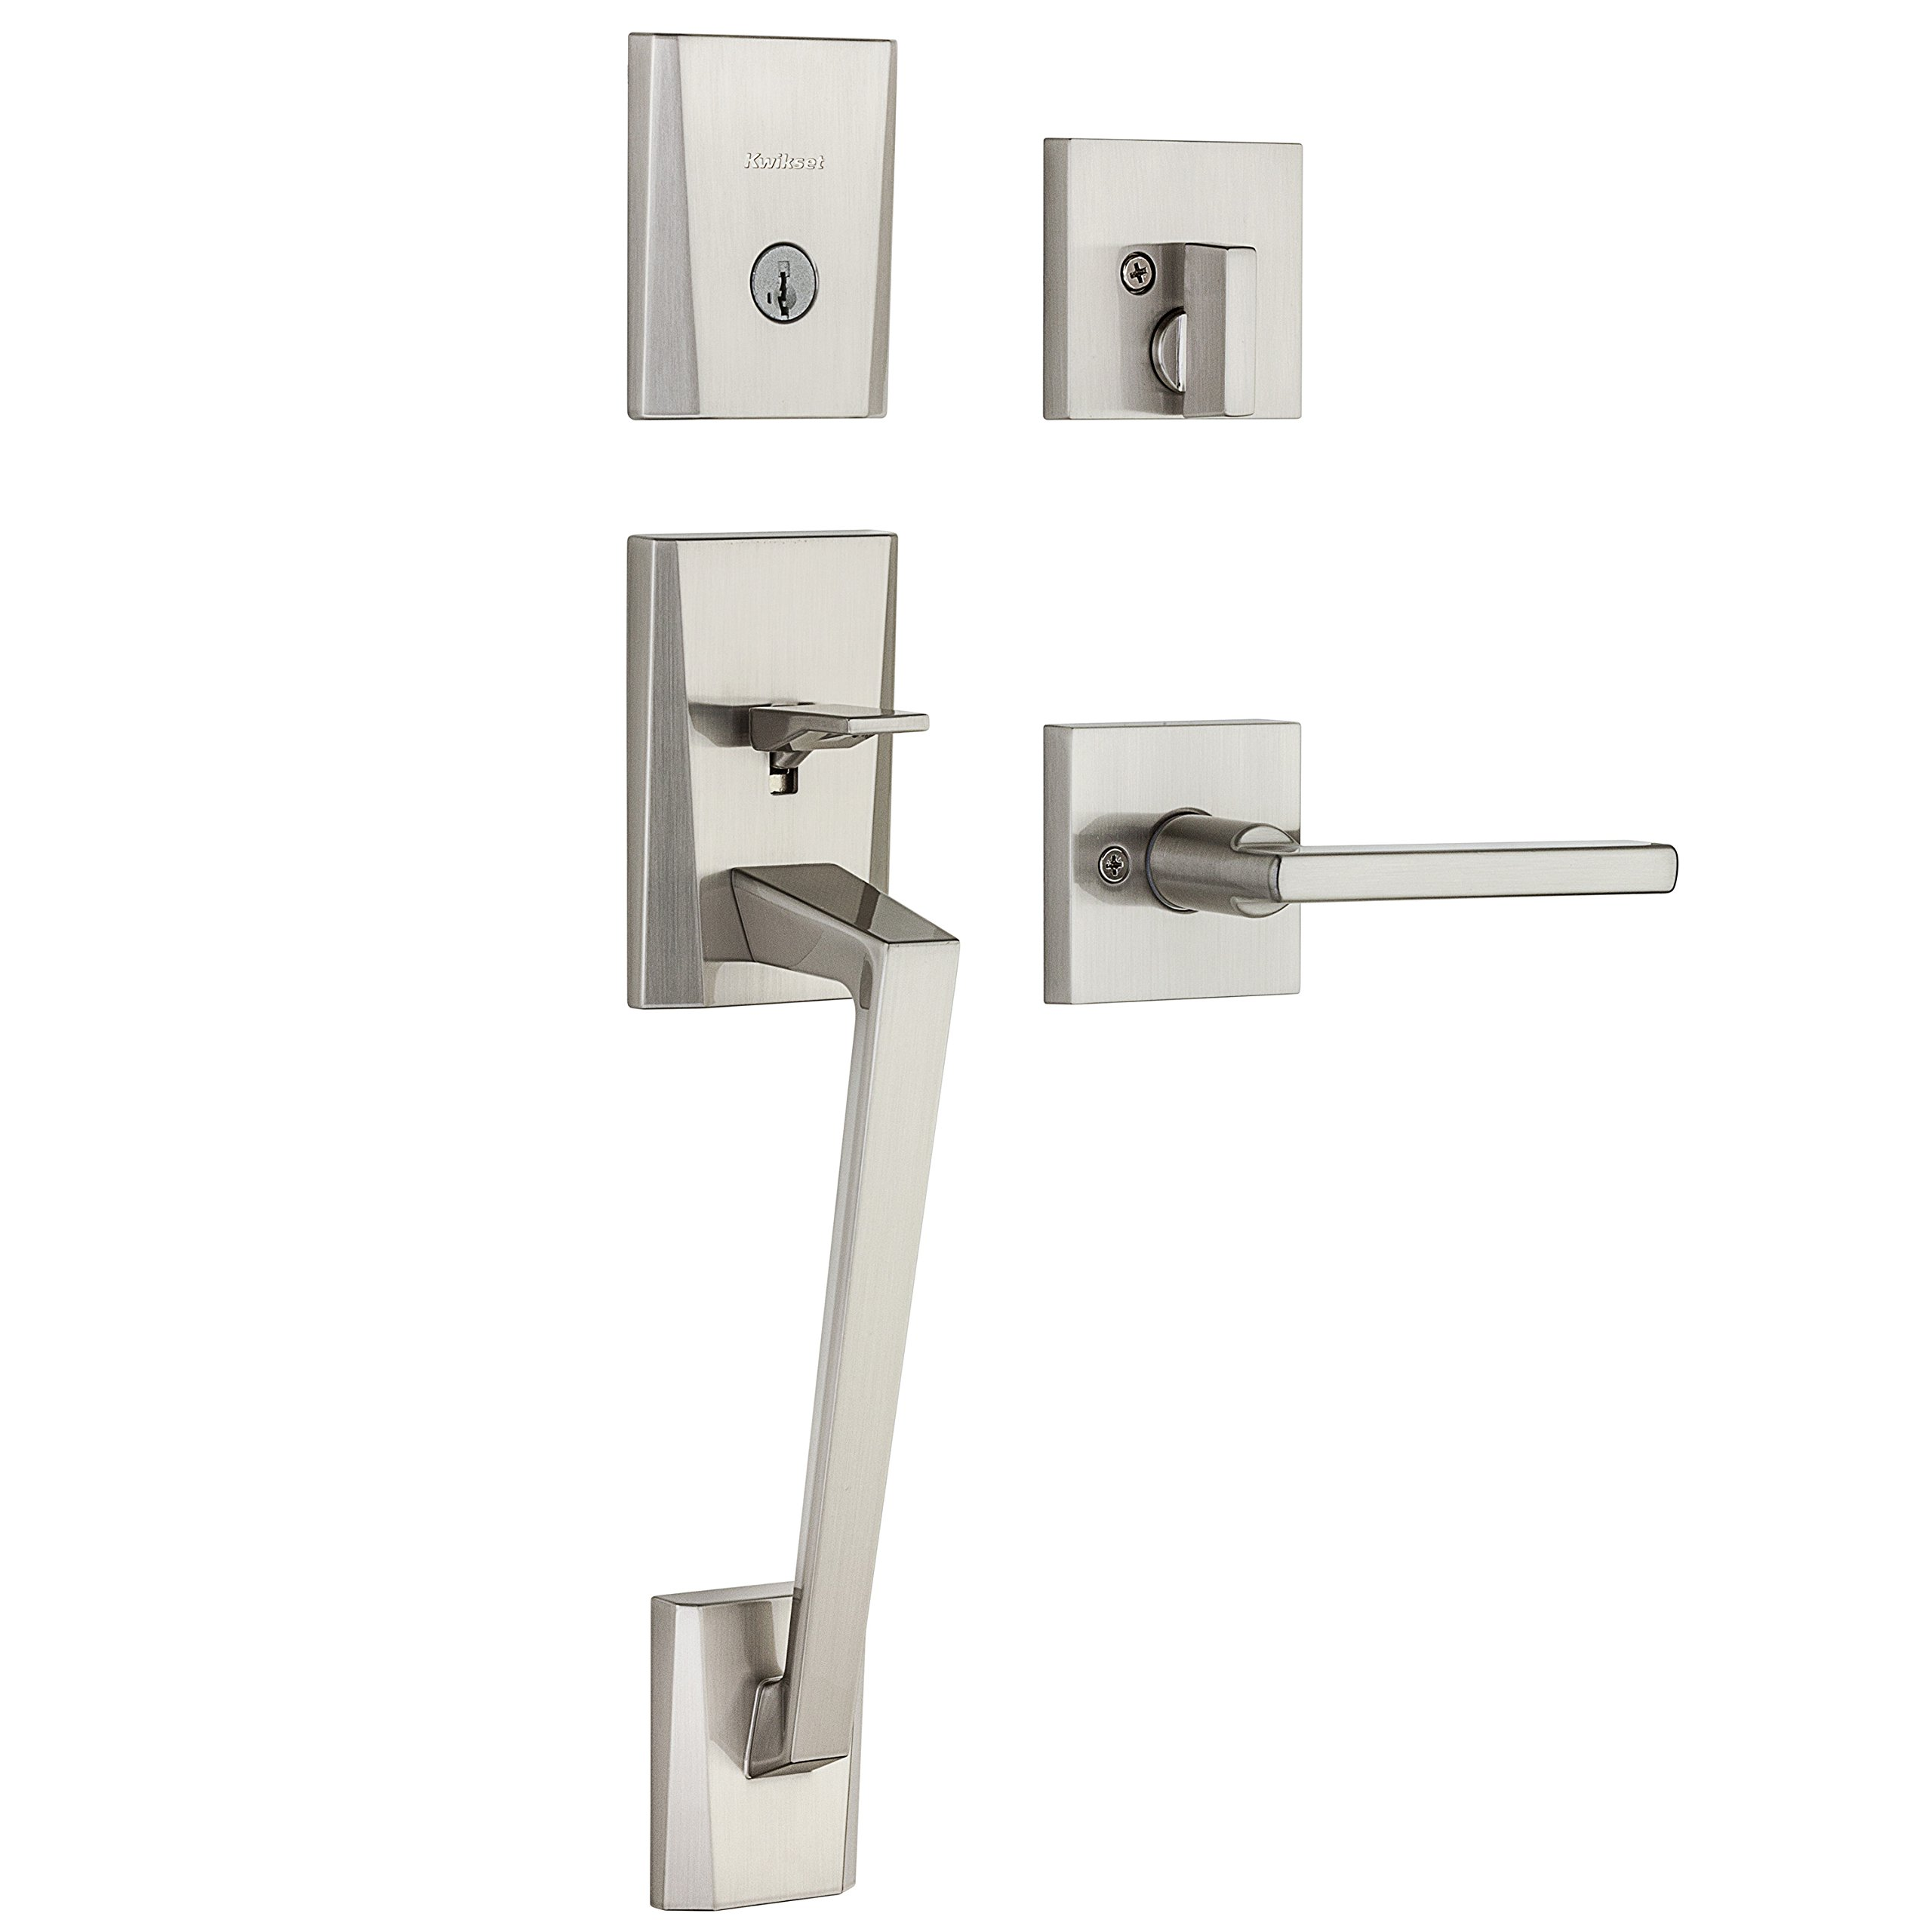 Kwikset 98180-003 Camino Single Cylinder Low Profile Handleset with Halifax Lever Featuring Smartkey In Satin Nickel by Kwikset (Image #1)